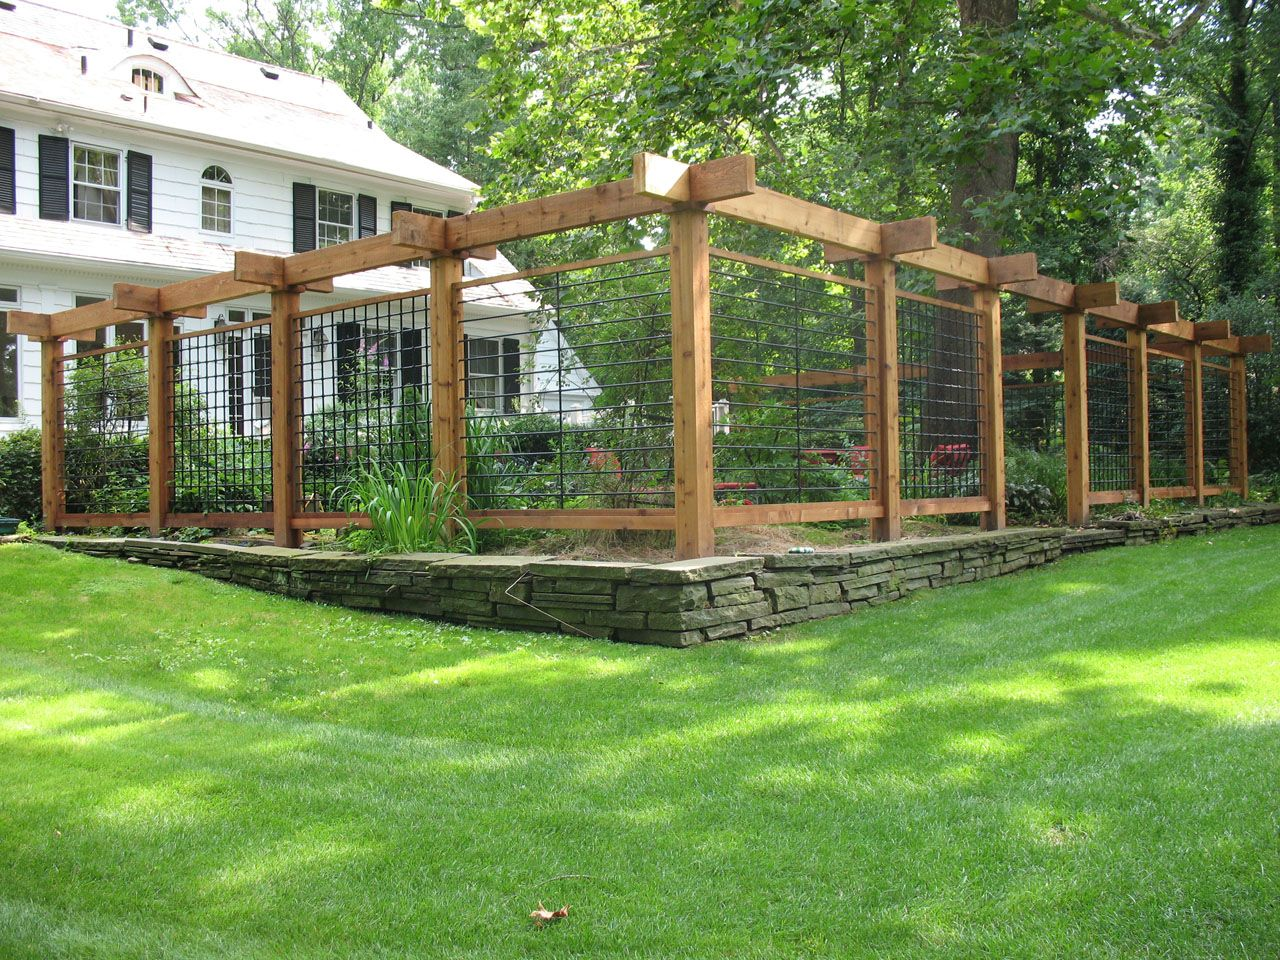 Vegetable garden deer fence ideas - Find This Pin And More On Garden Ideas Deer Proof Fence